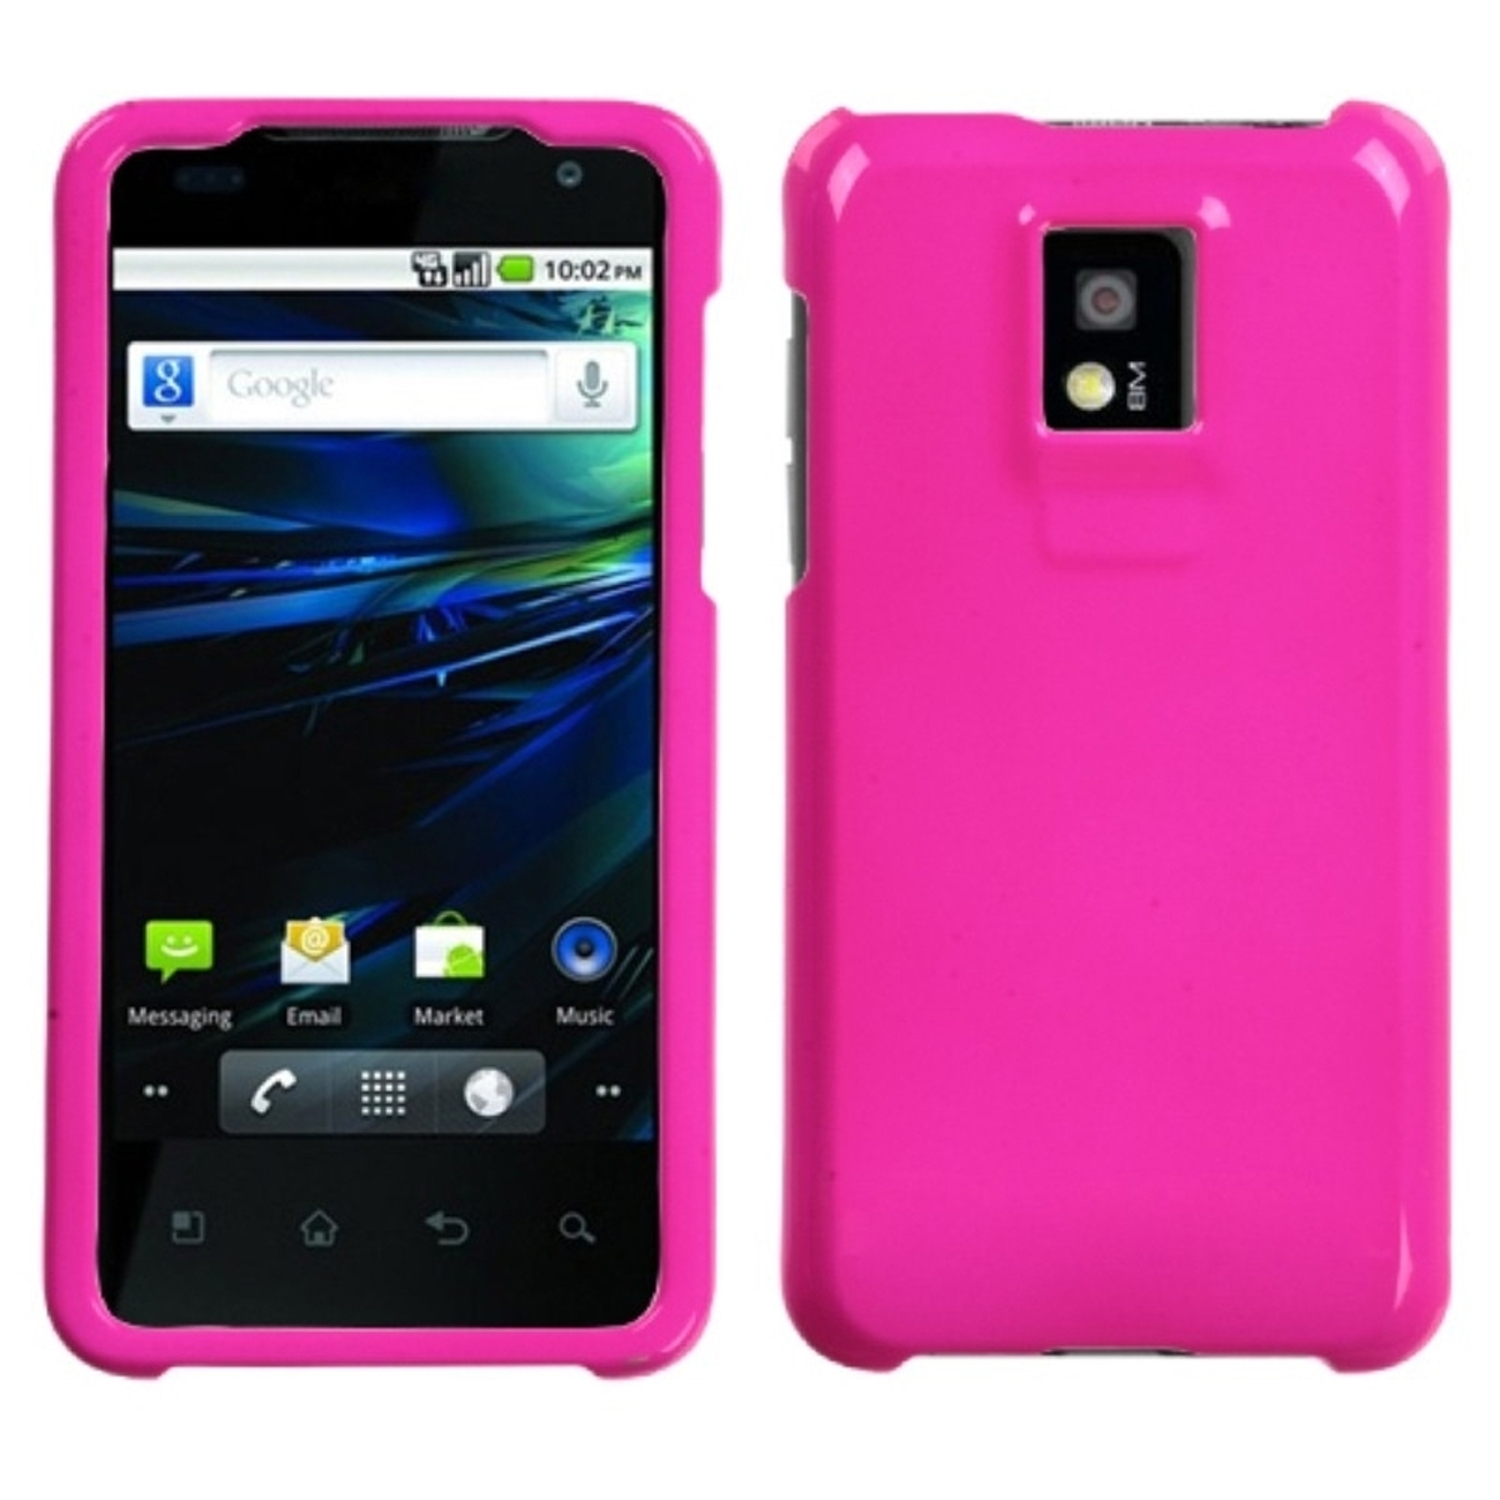 Insten Solid Shocking Pink Phone Case for LG: P999 (G2X)